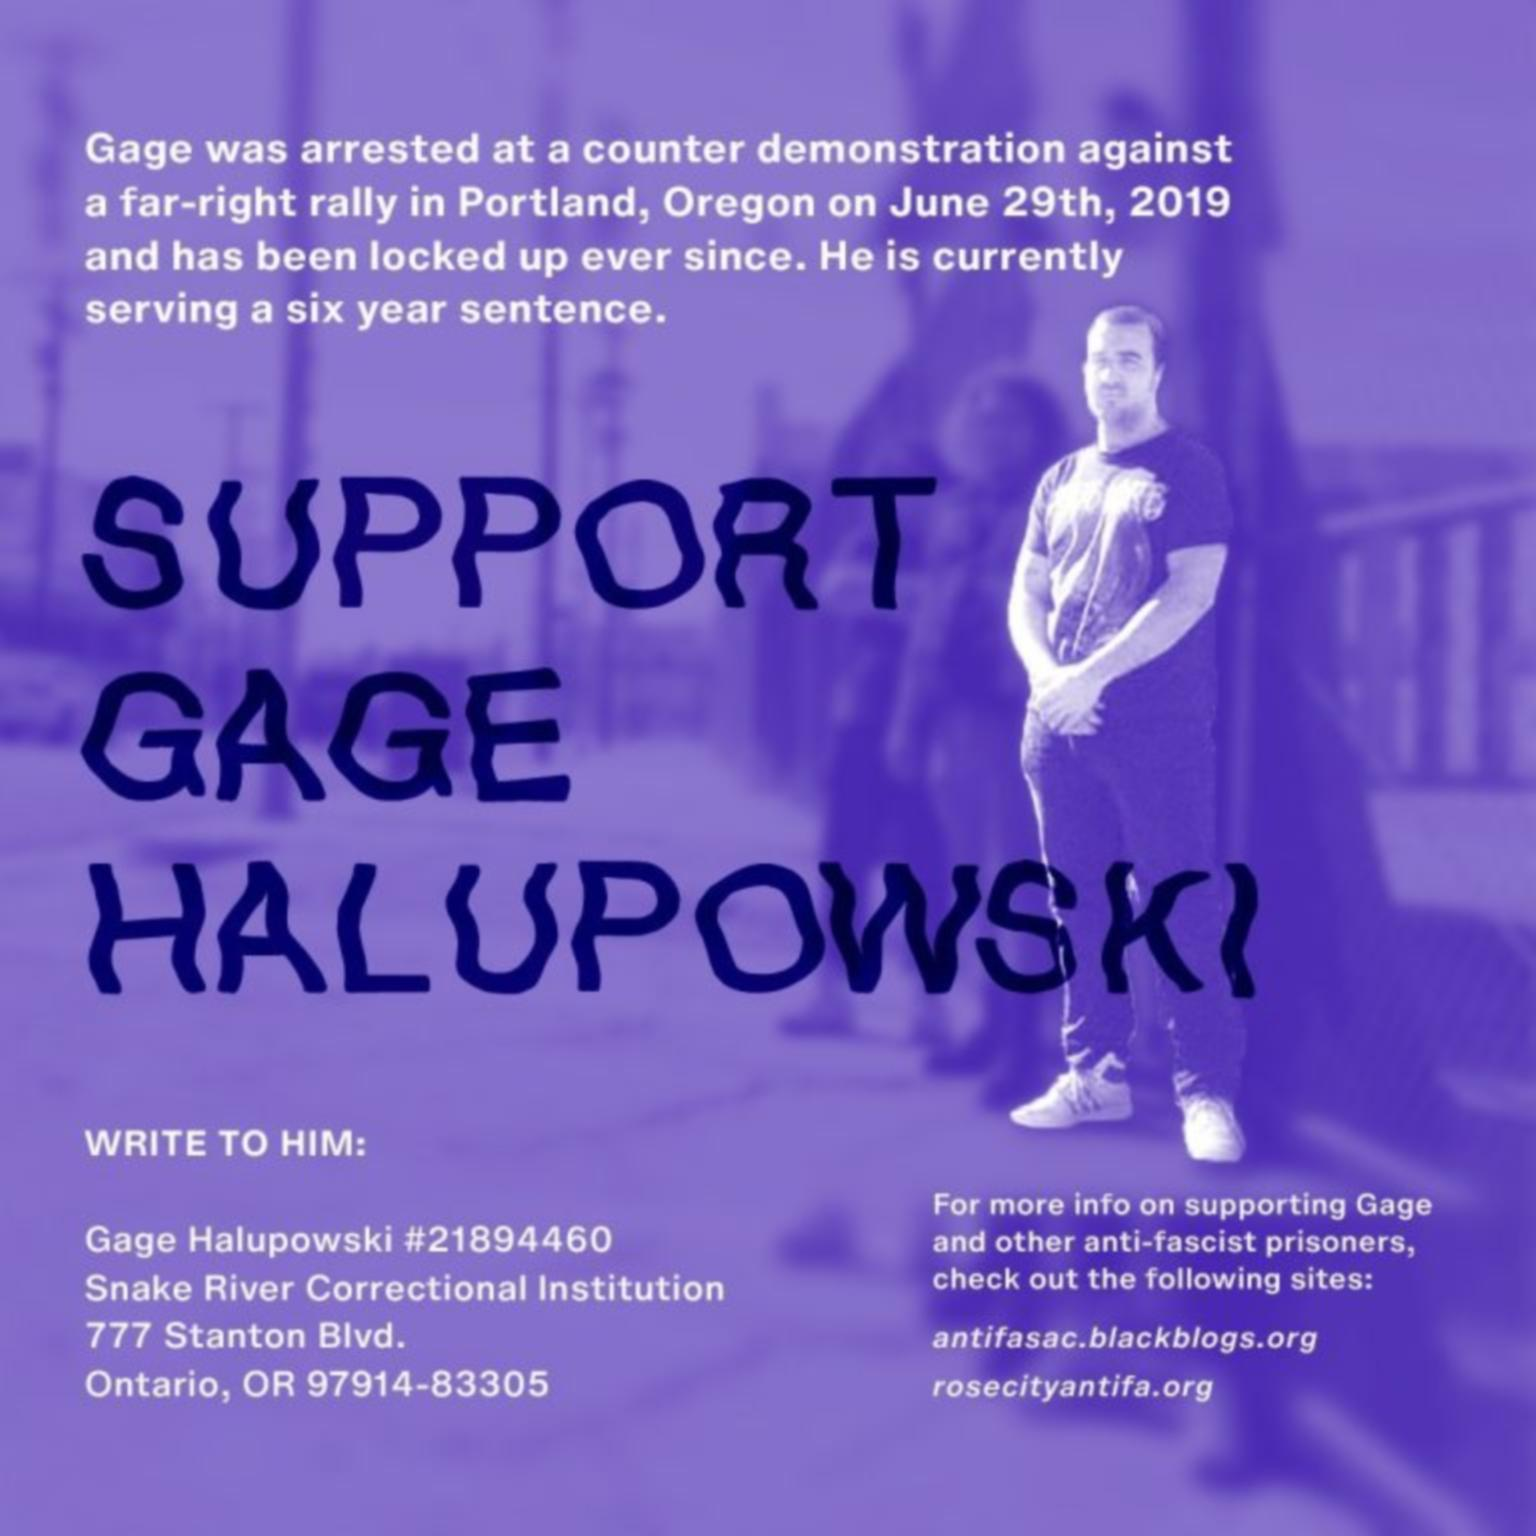 Monday, July 27th: Letter-writing for Gage Halupowski